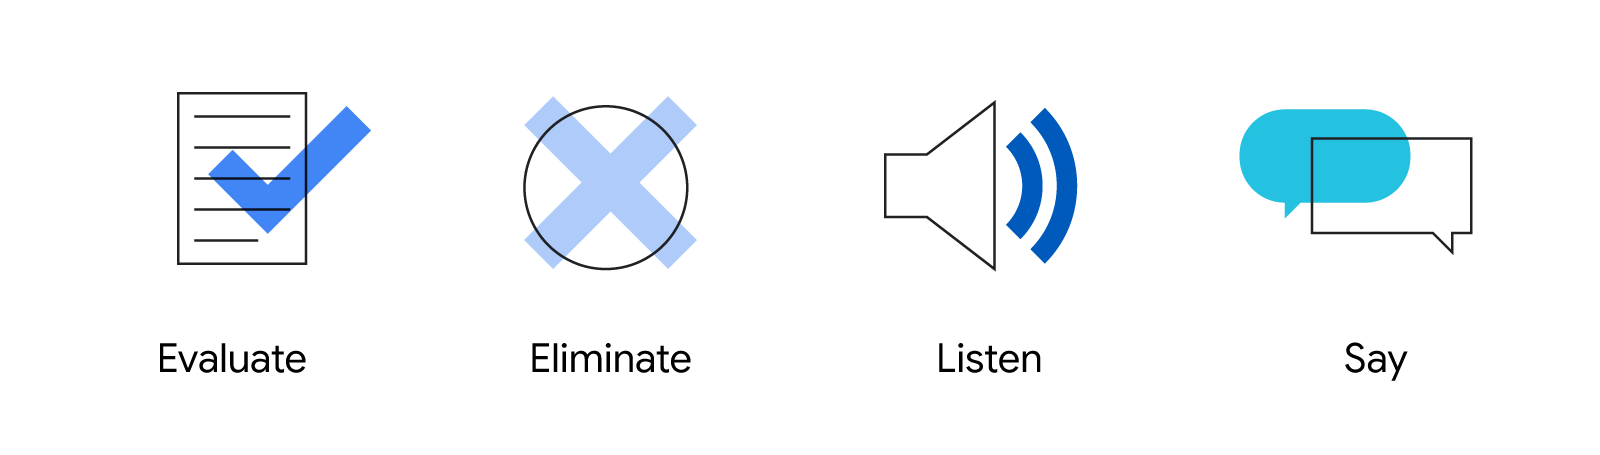 4 illustrated icons with captions, Evaluate, Eliminate, Listen, and Say, that illustrate the 4 bullet points below.